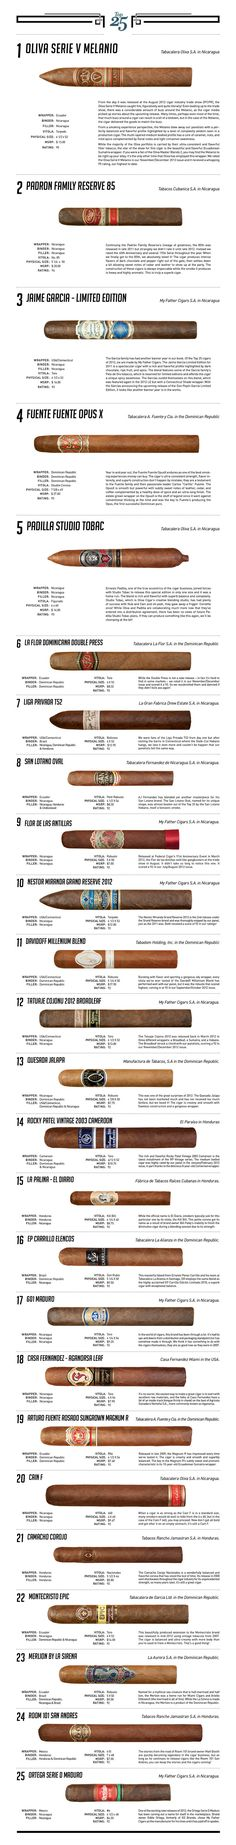 Cigar Snob Magazine's Top 25 of 2012